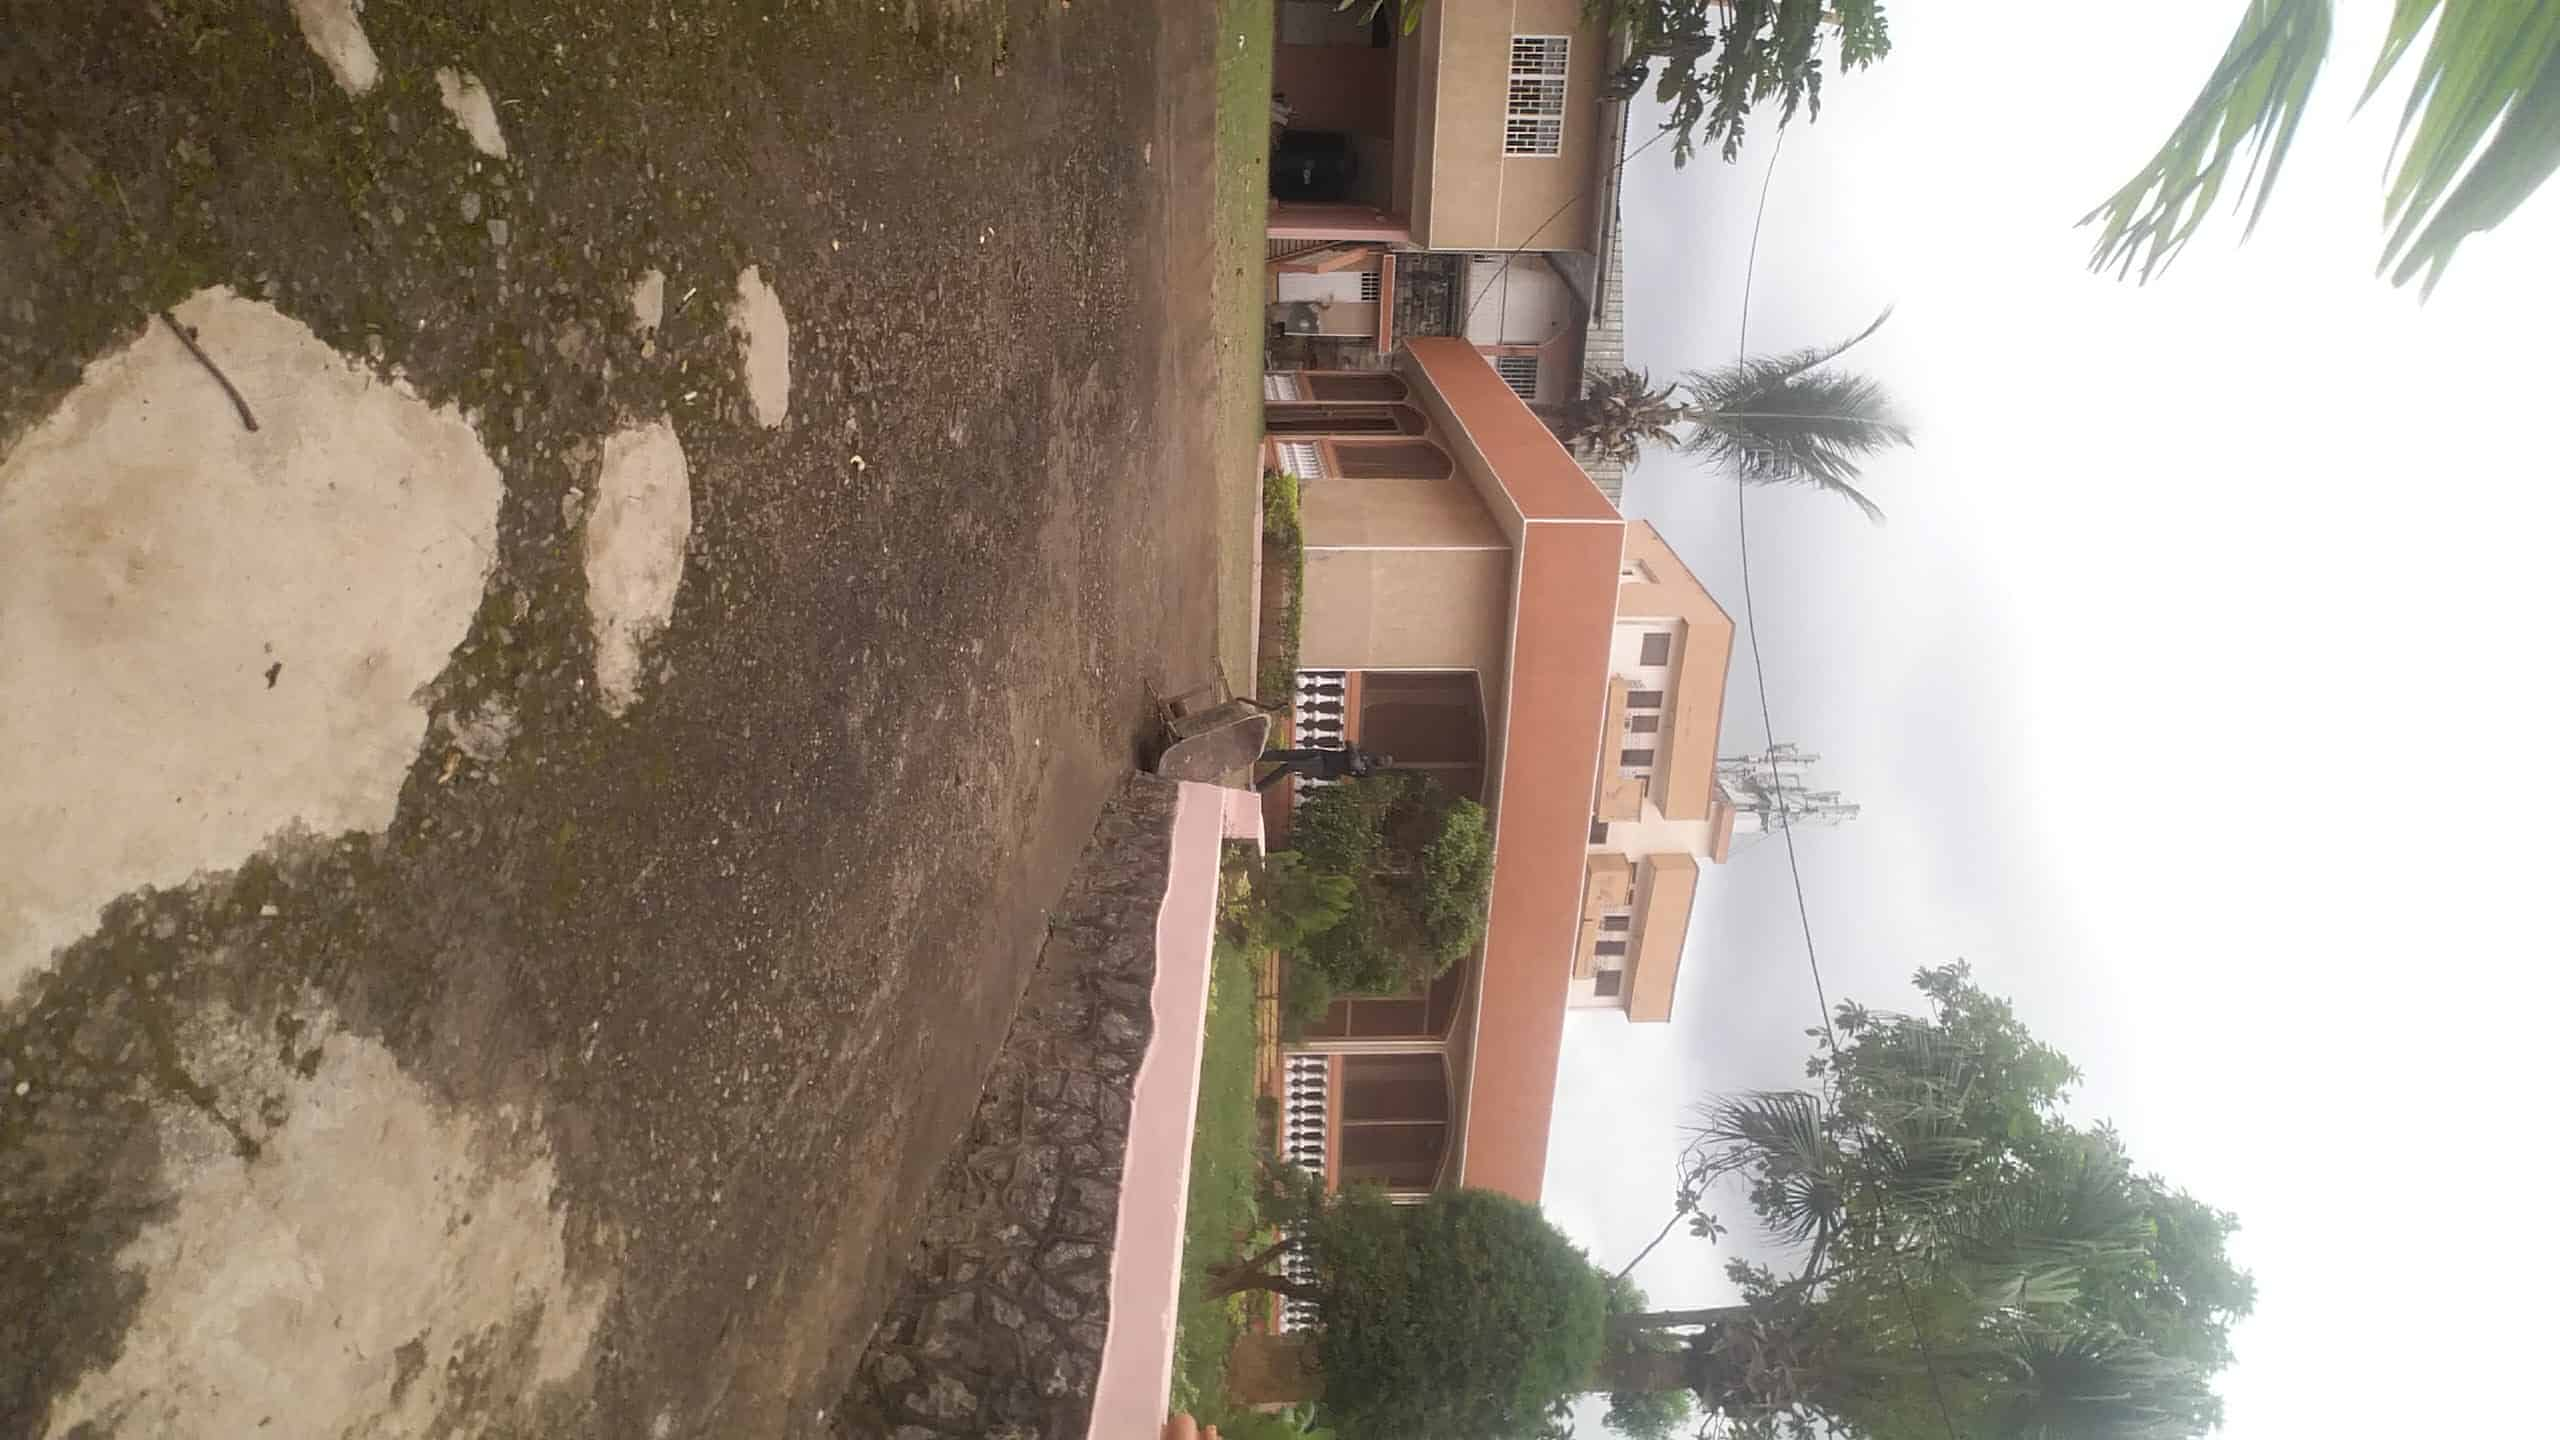 House (Villa) to rent - Yaoundé, Mfandena, Omnisport - 2 living room(s), 4 bedroom(s), 4 bathroom(s) - 900 000 FCFA / month